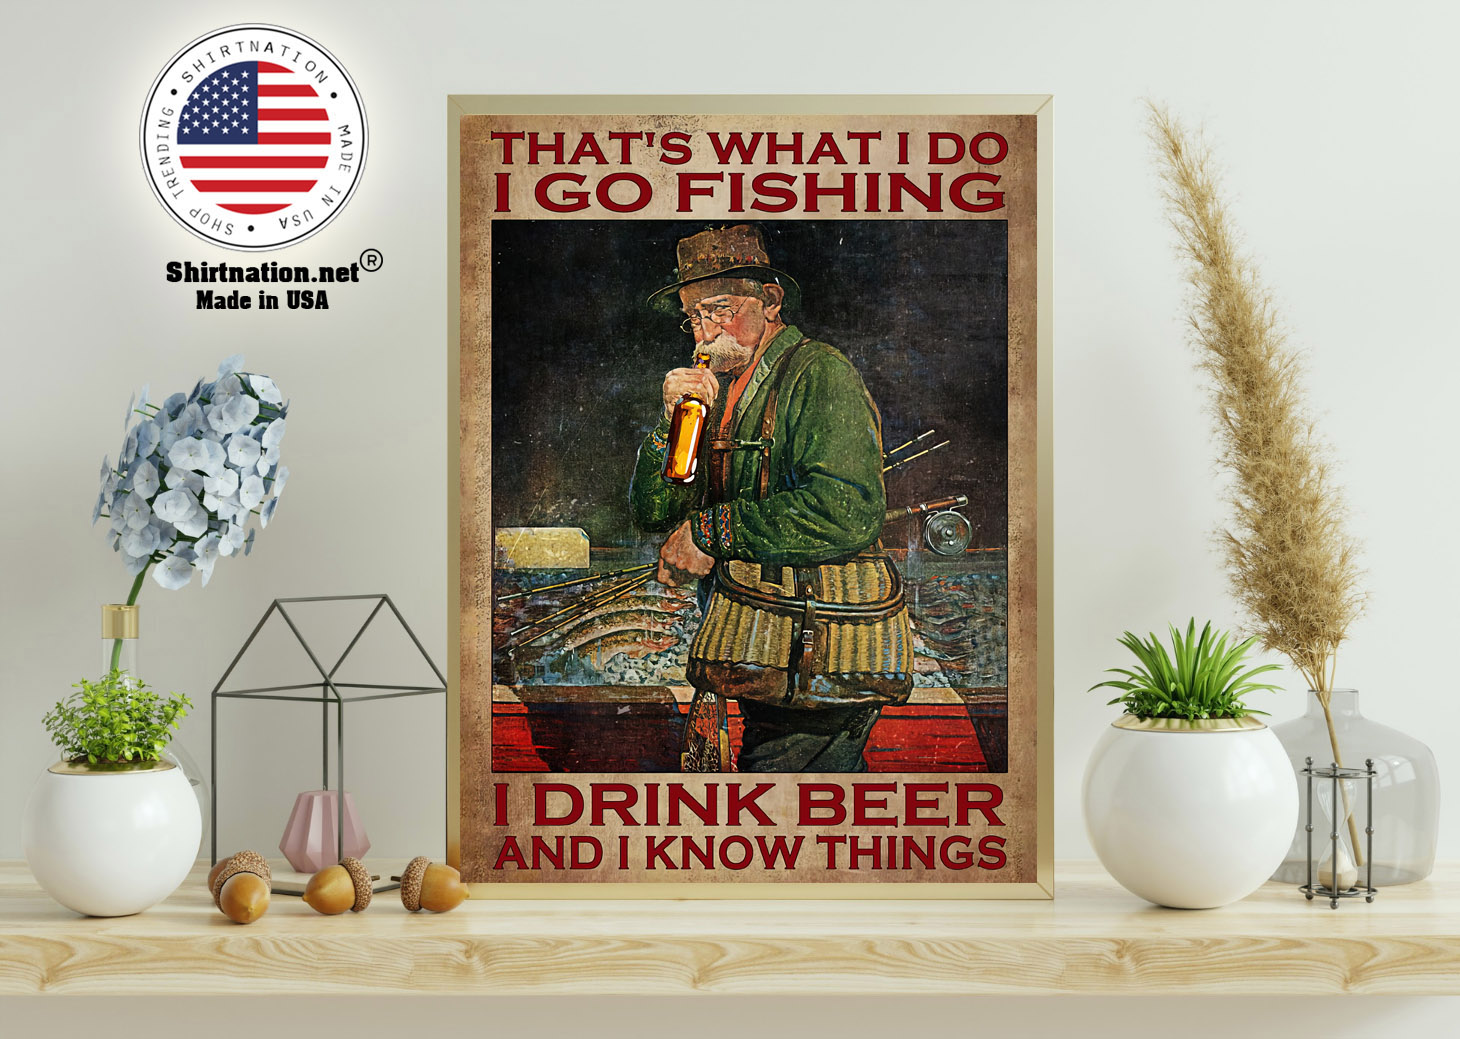 Old man Thats what I do I go fishing I drink beer and I know things poster 11